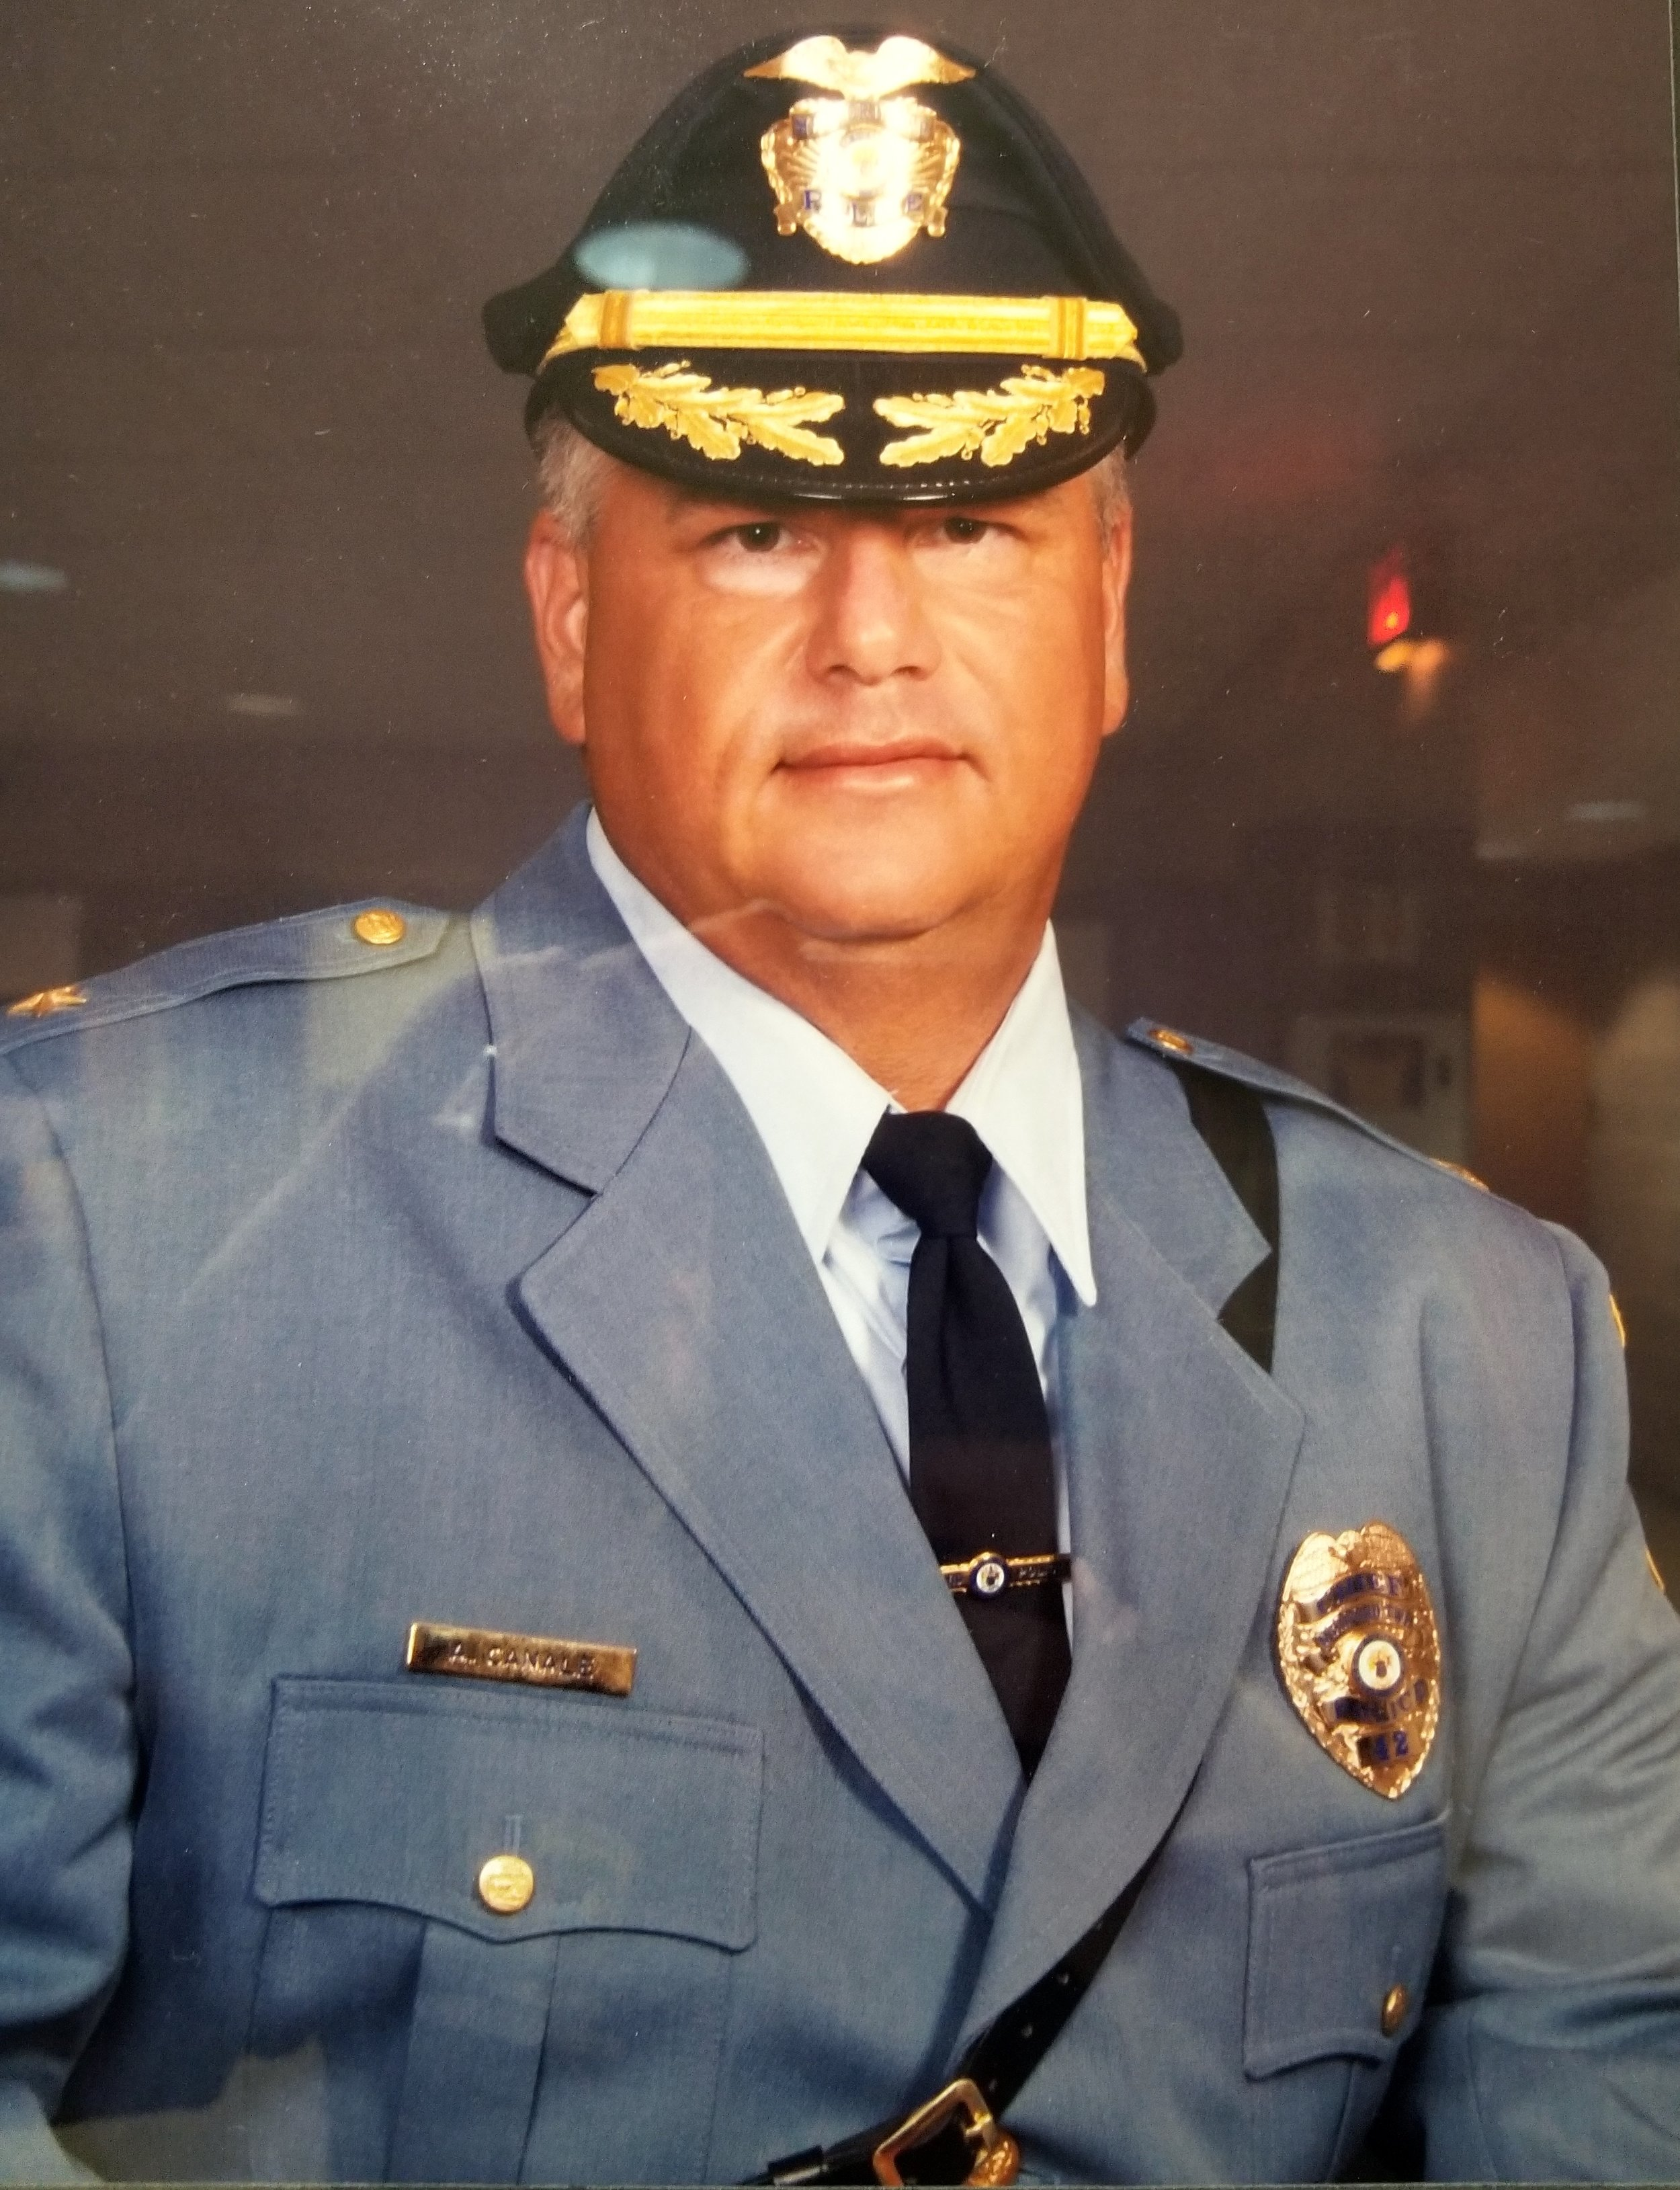 Chief Anthony Canale #2542